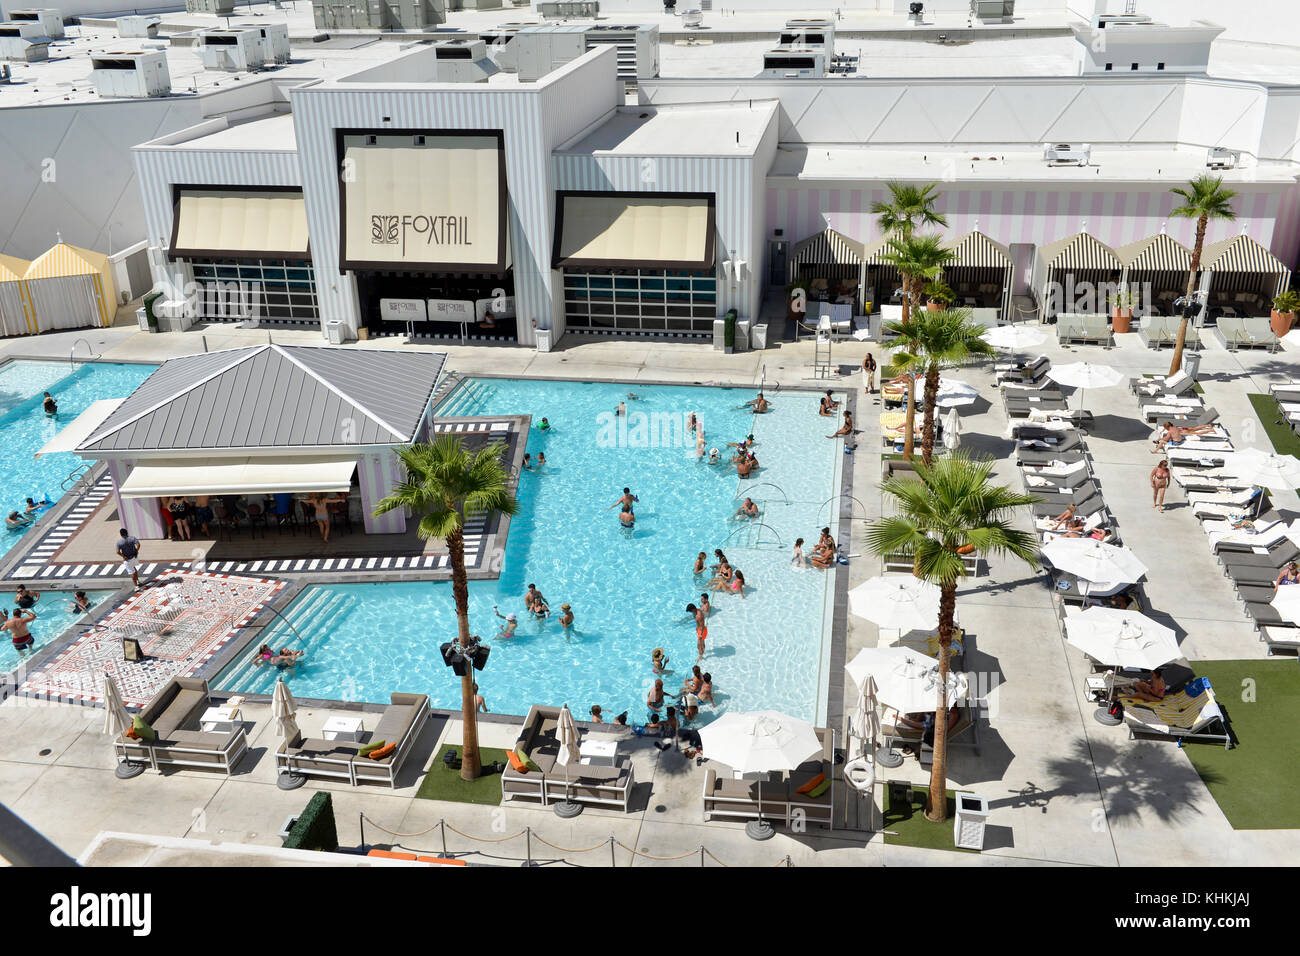 Swimming pool aerial view stock photos swimming pool aerial view stock images alamy for Las vegas swimming pools open to public